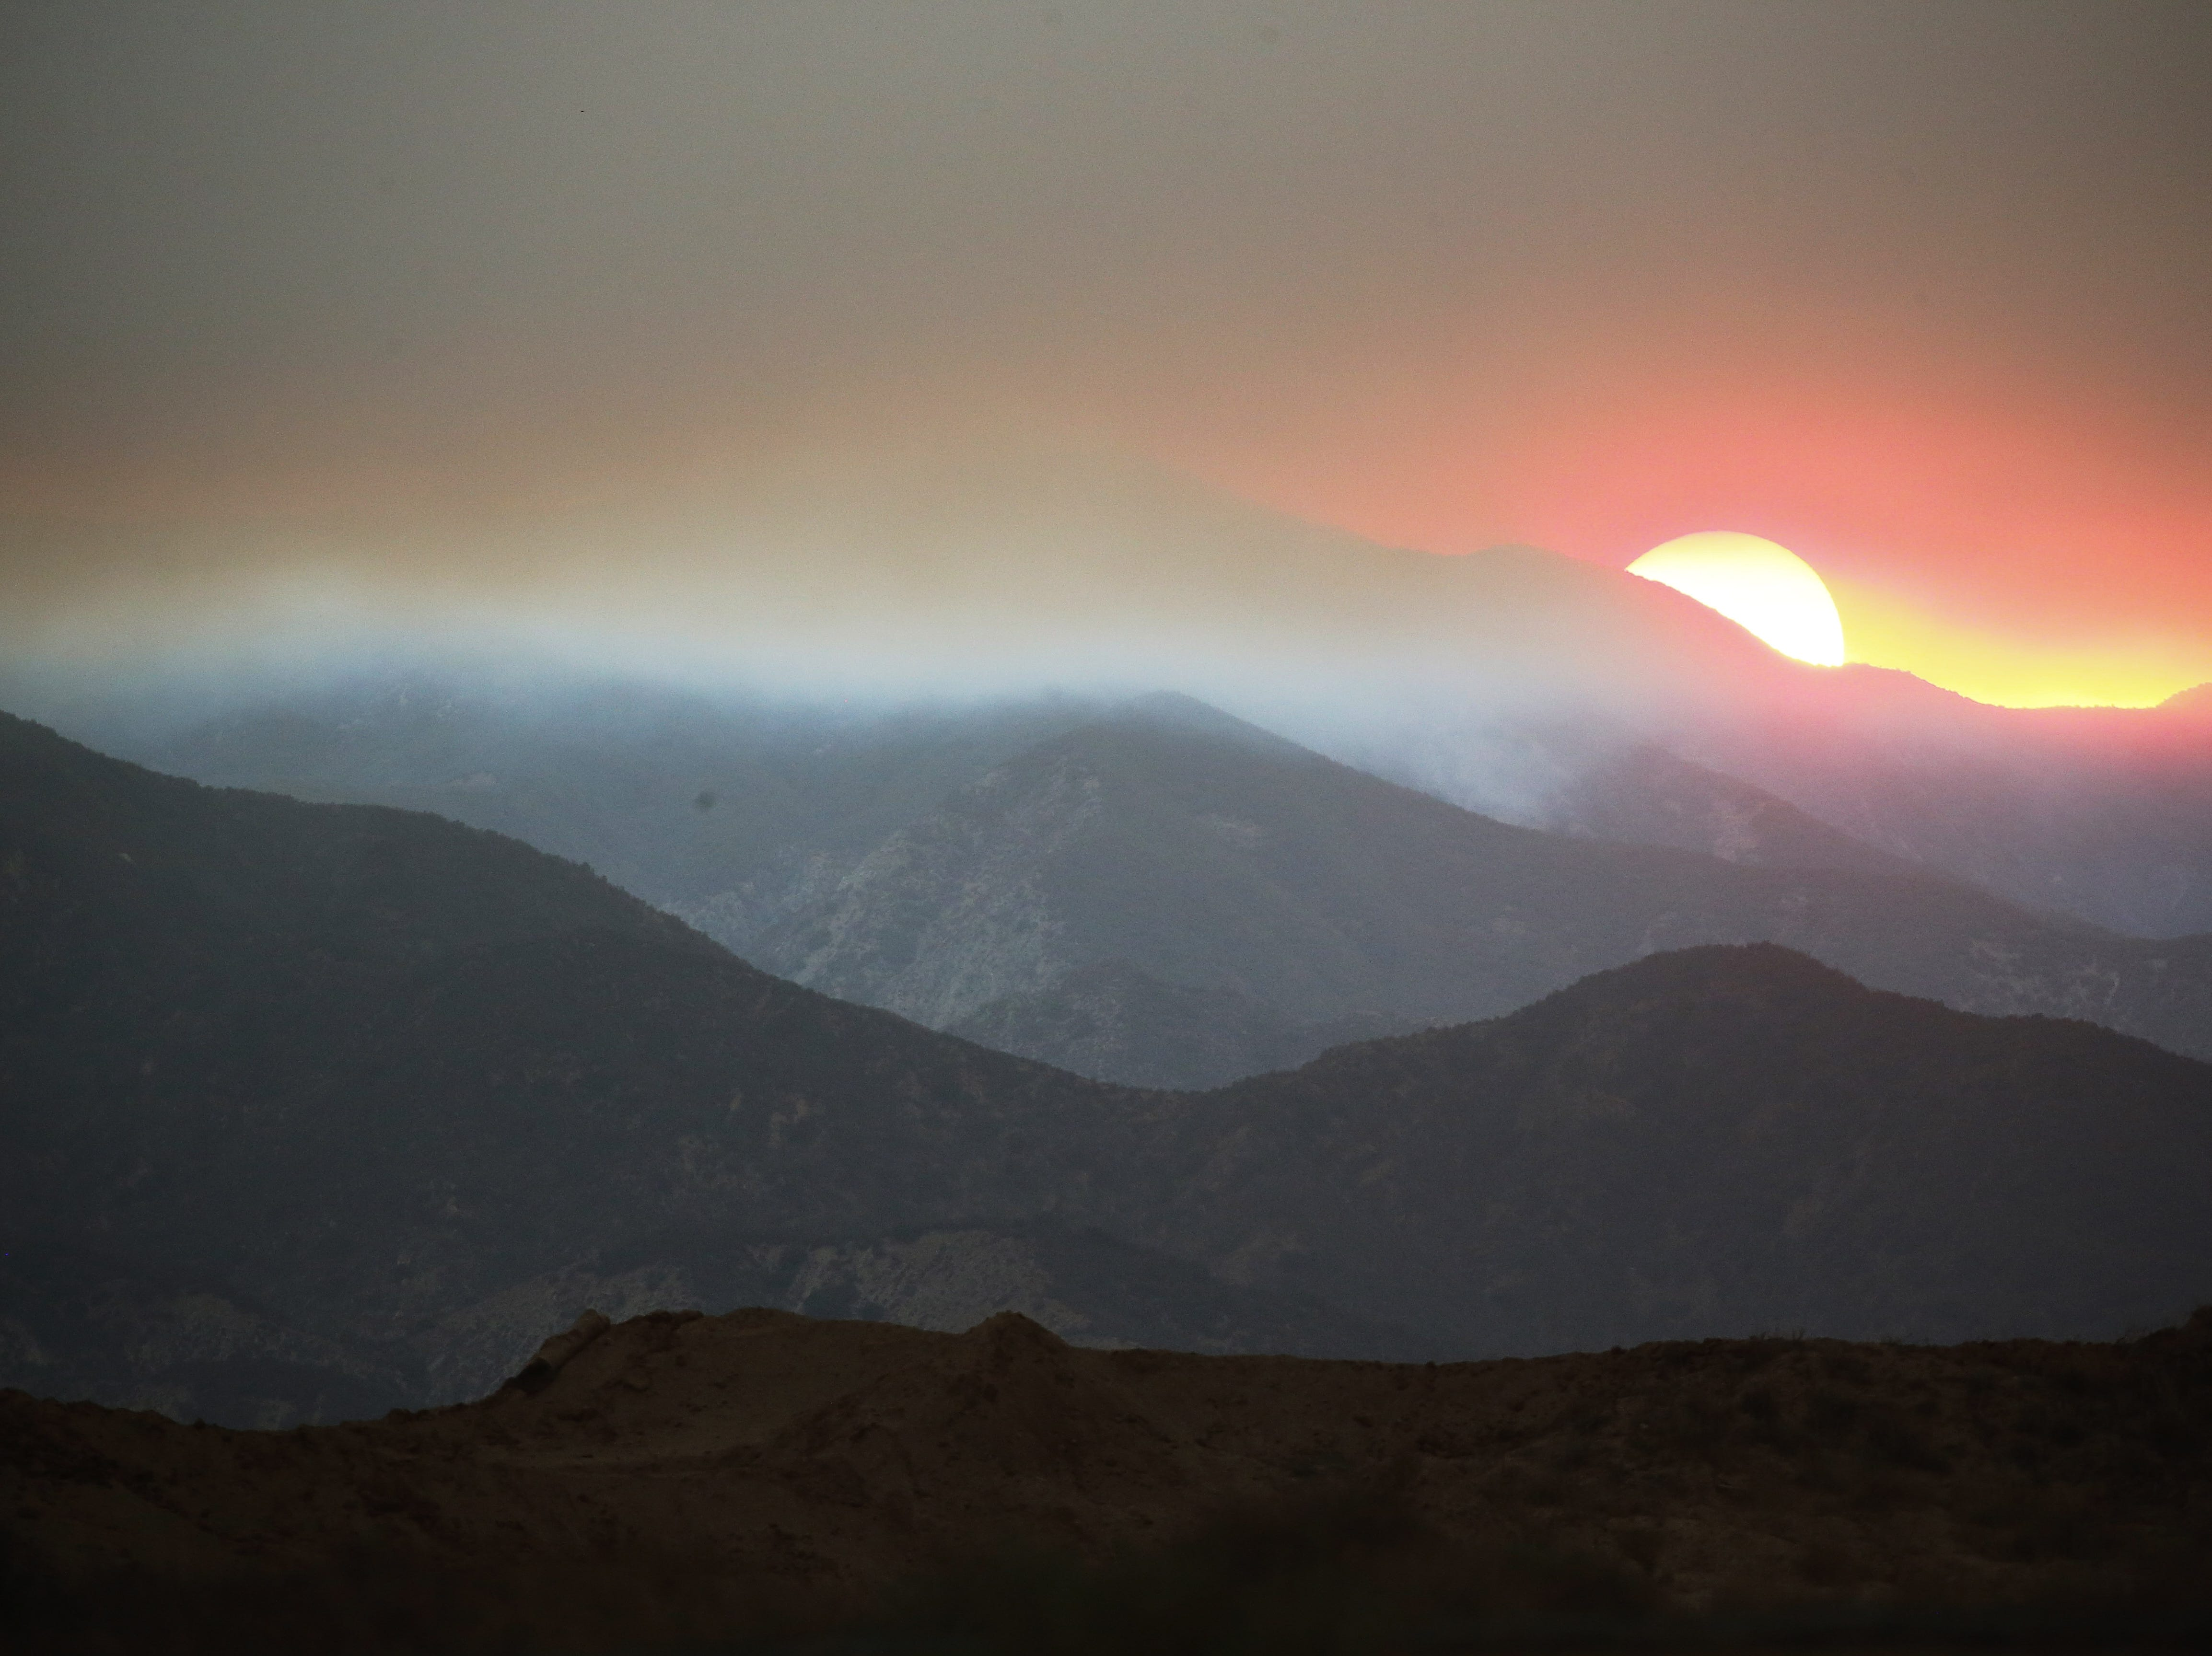 CORONA, CA - AUGUST 08:  The sun sets behind smoke from the Holy Fire in Cleveland National Forest on August 8, 2018 in Corona, California. The fire has burned at least 6,200 acres and destroyed twelve structures.  (Photo by Mario Tama/Getty Images)